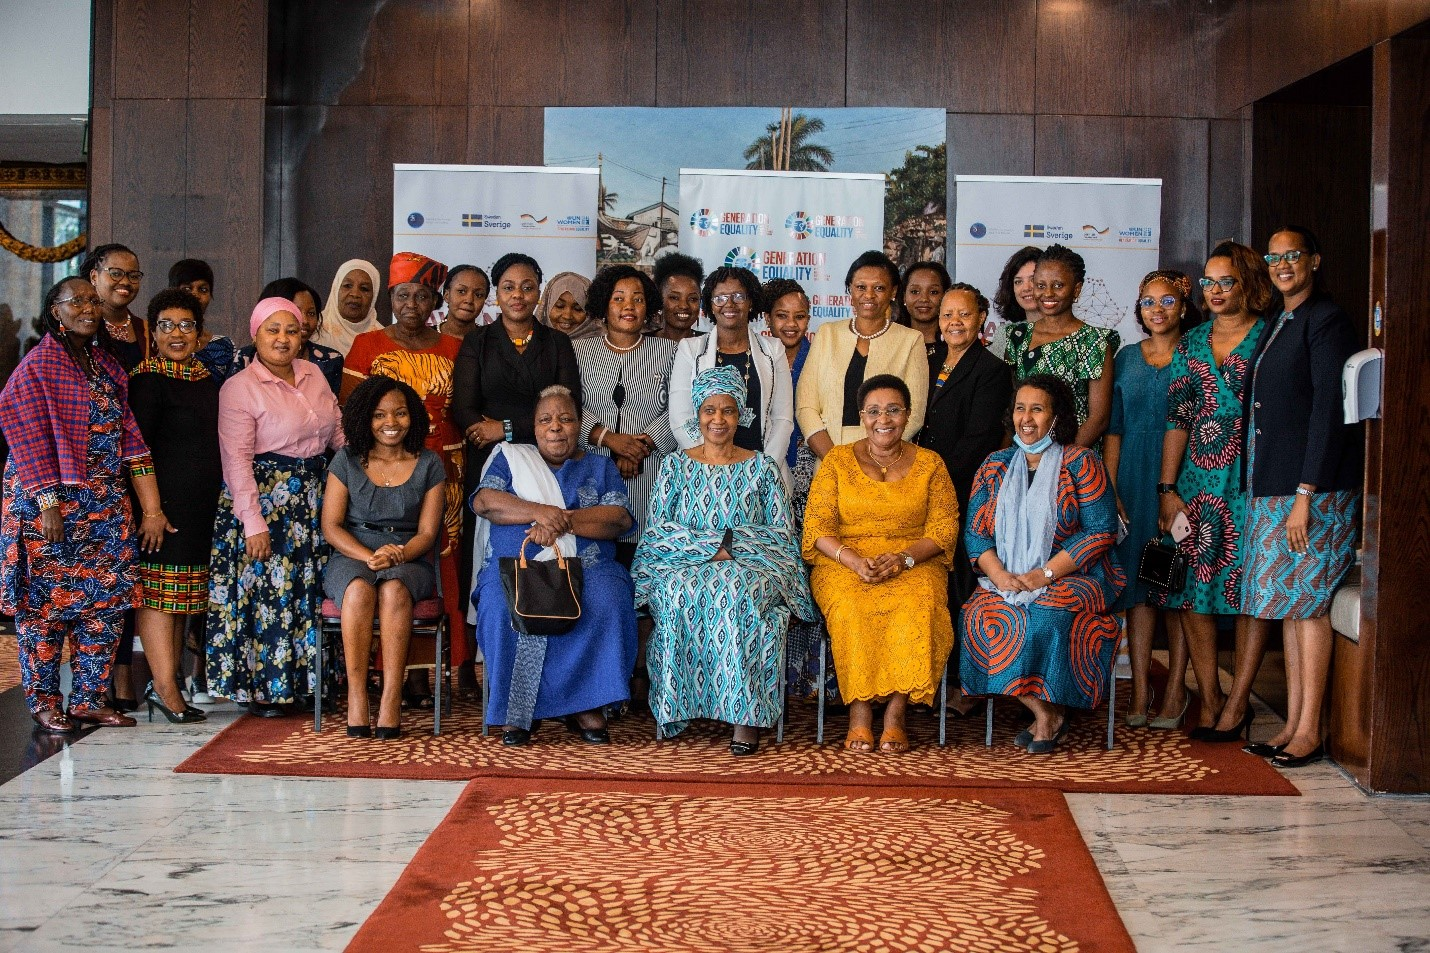 UN Women ED Takes Generation Equality  to Young Women Leaders in Tanzania